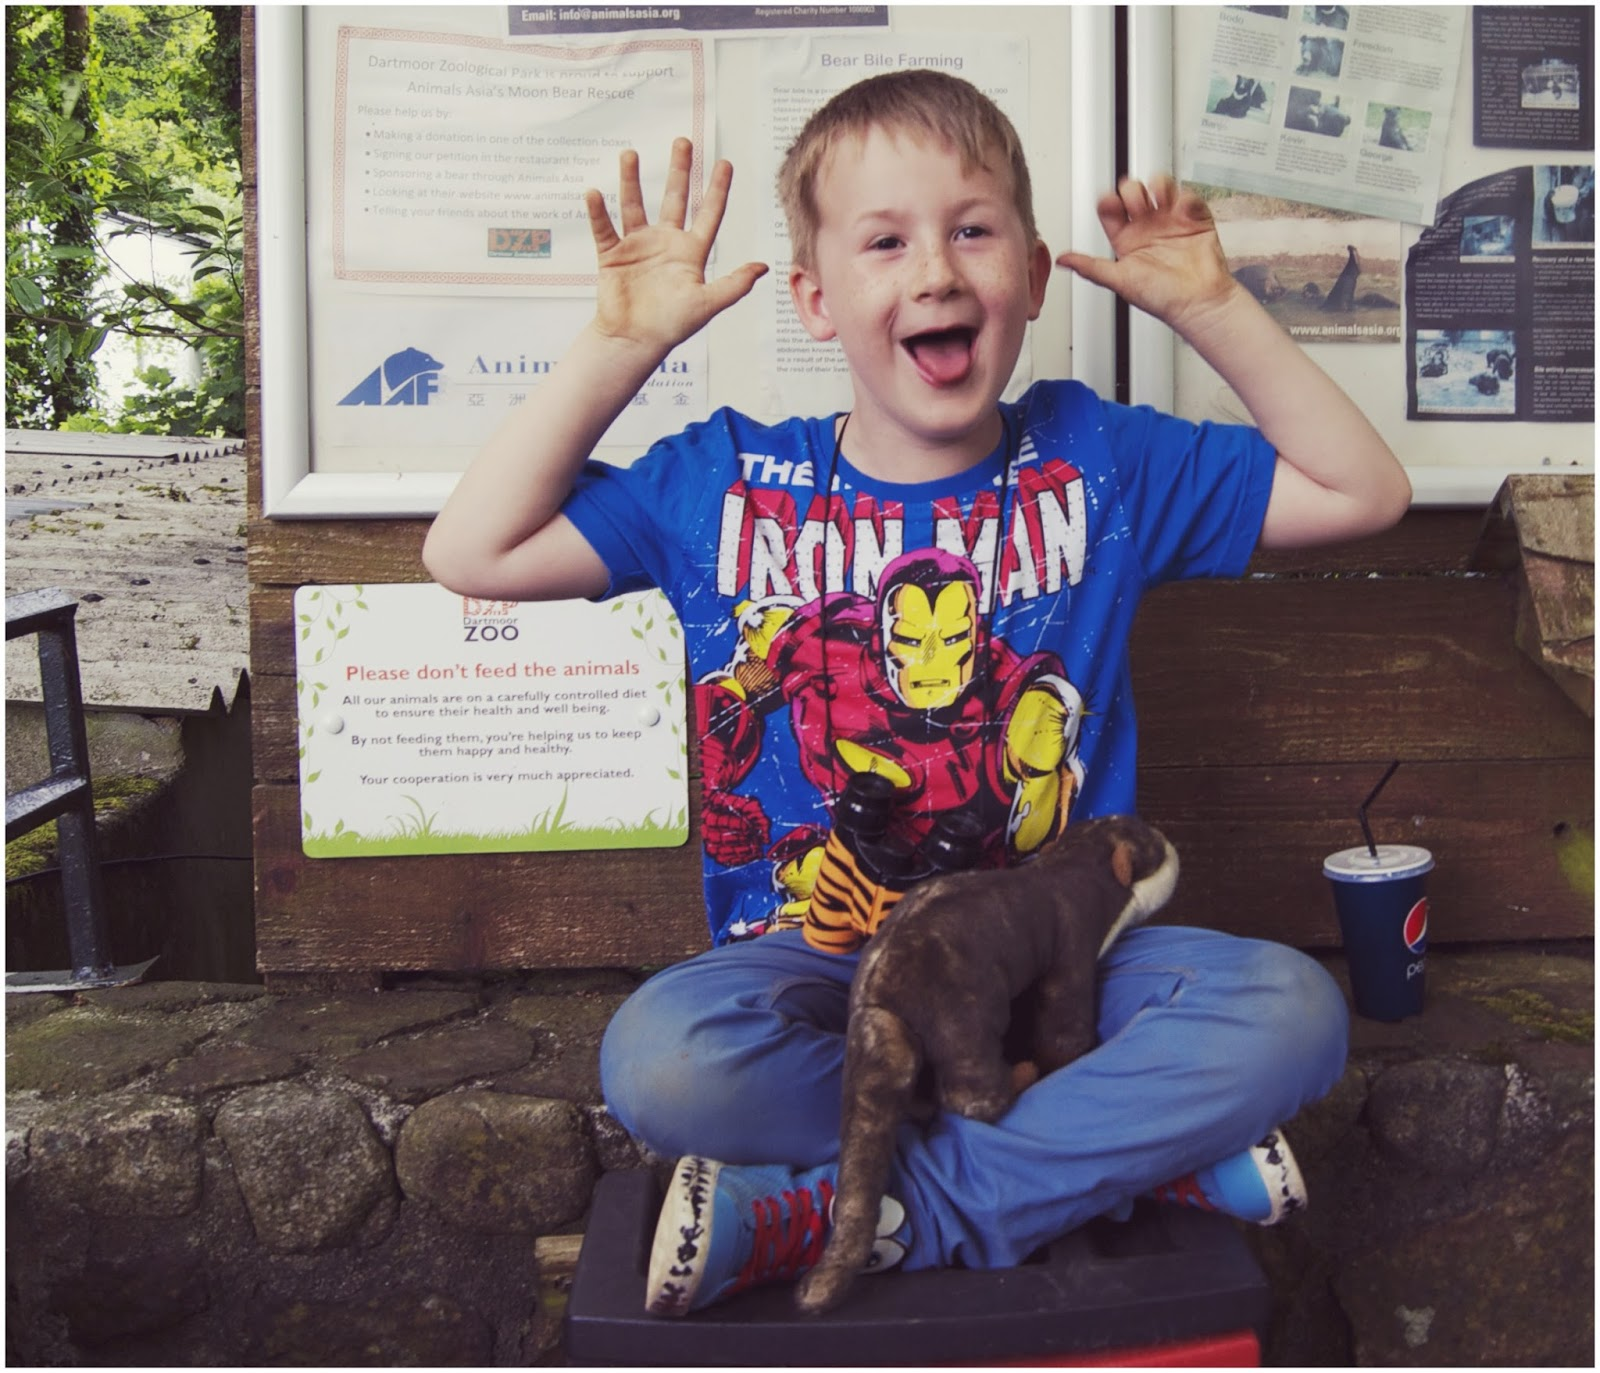 dartmoor zoo, bears, childhood, fun, lol, living arrows, photo, blogger, plymouth bloggers,